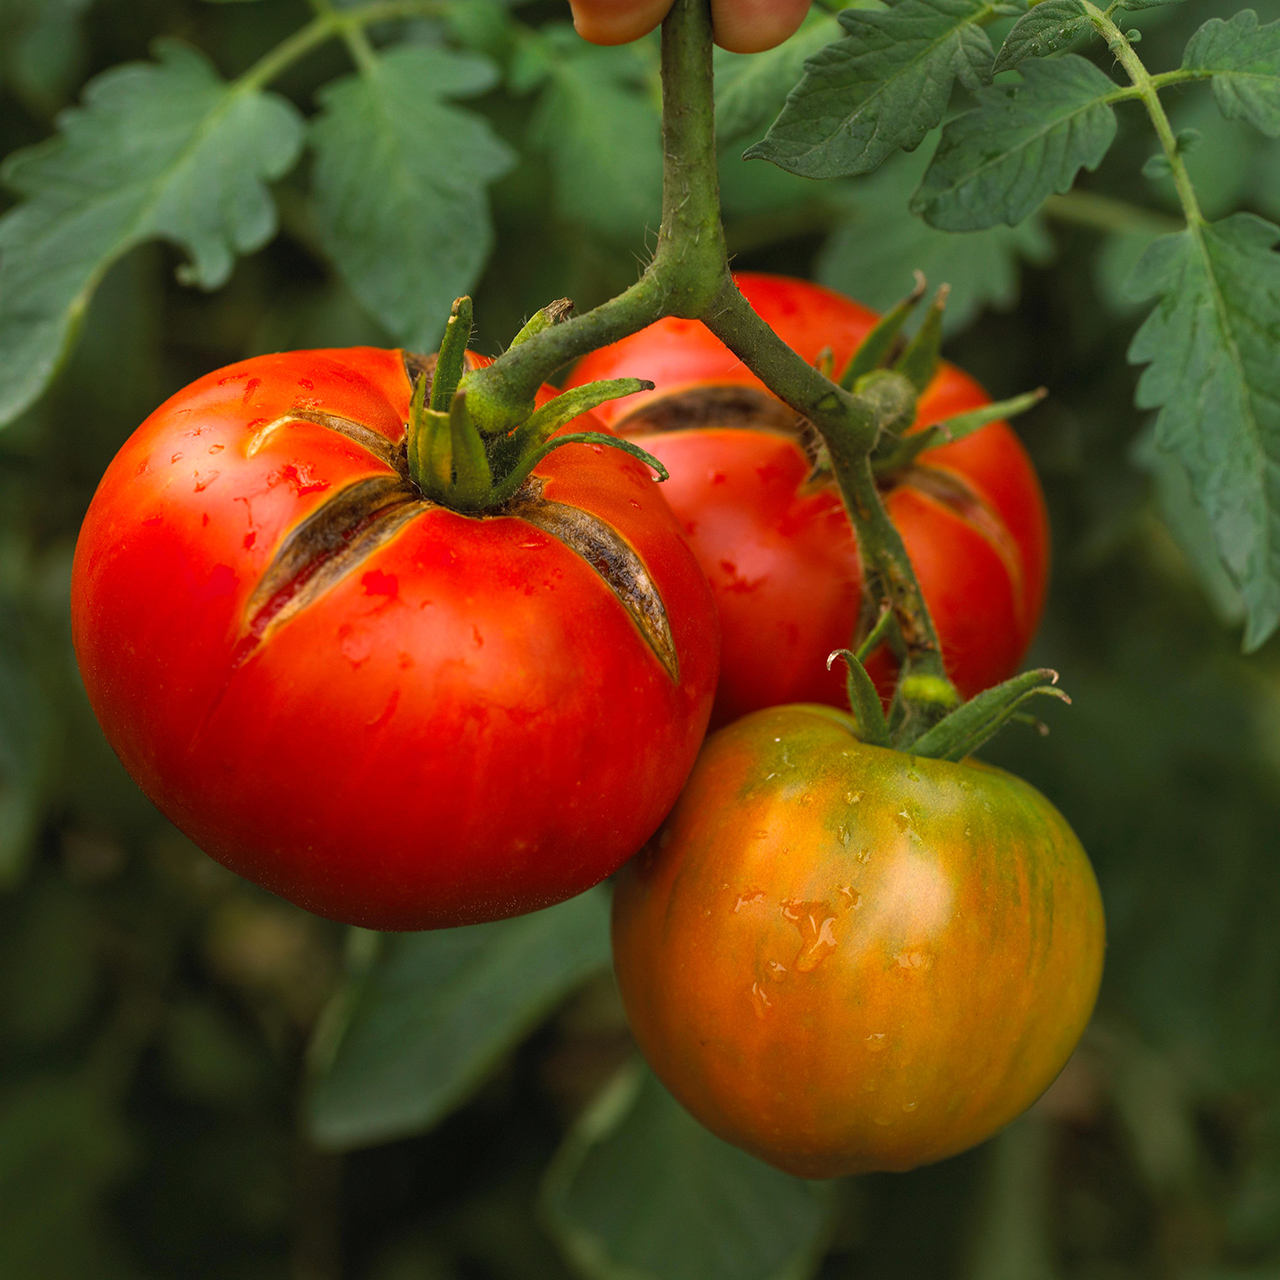 Moskvich tomatoes